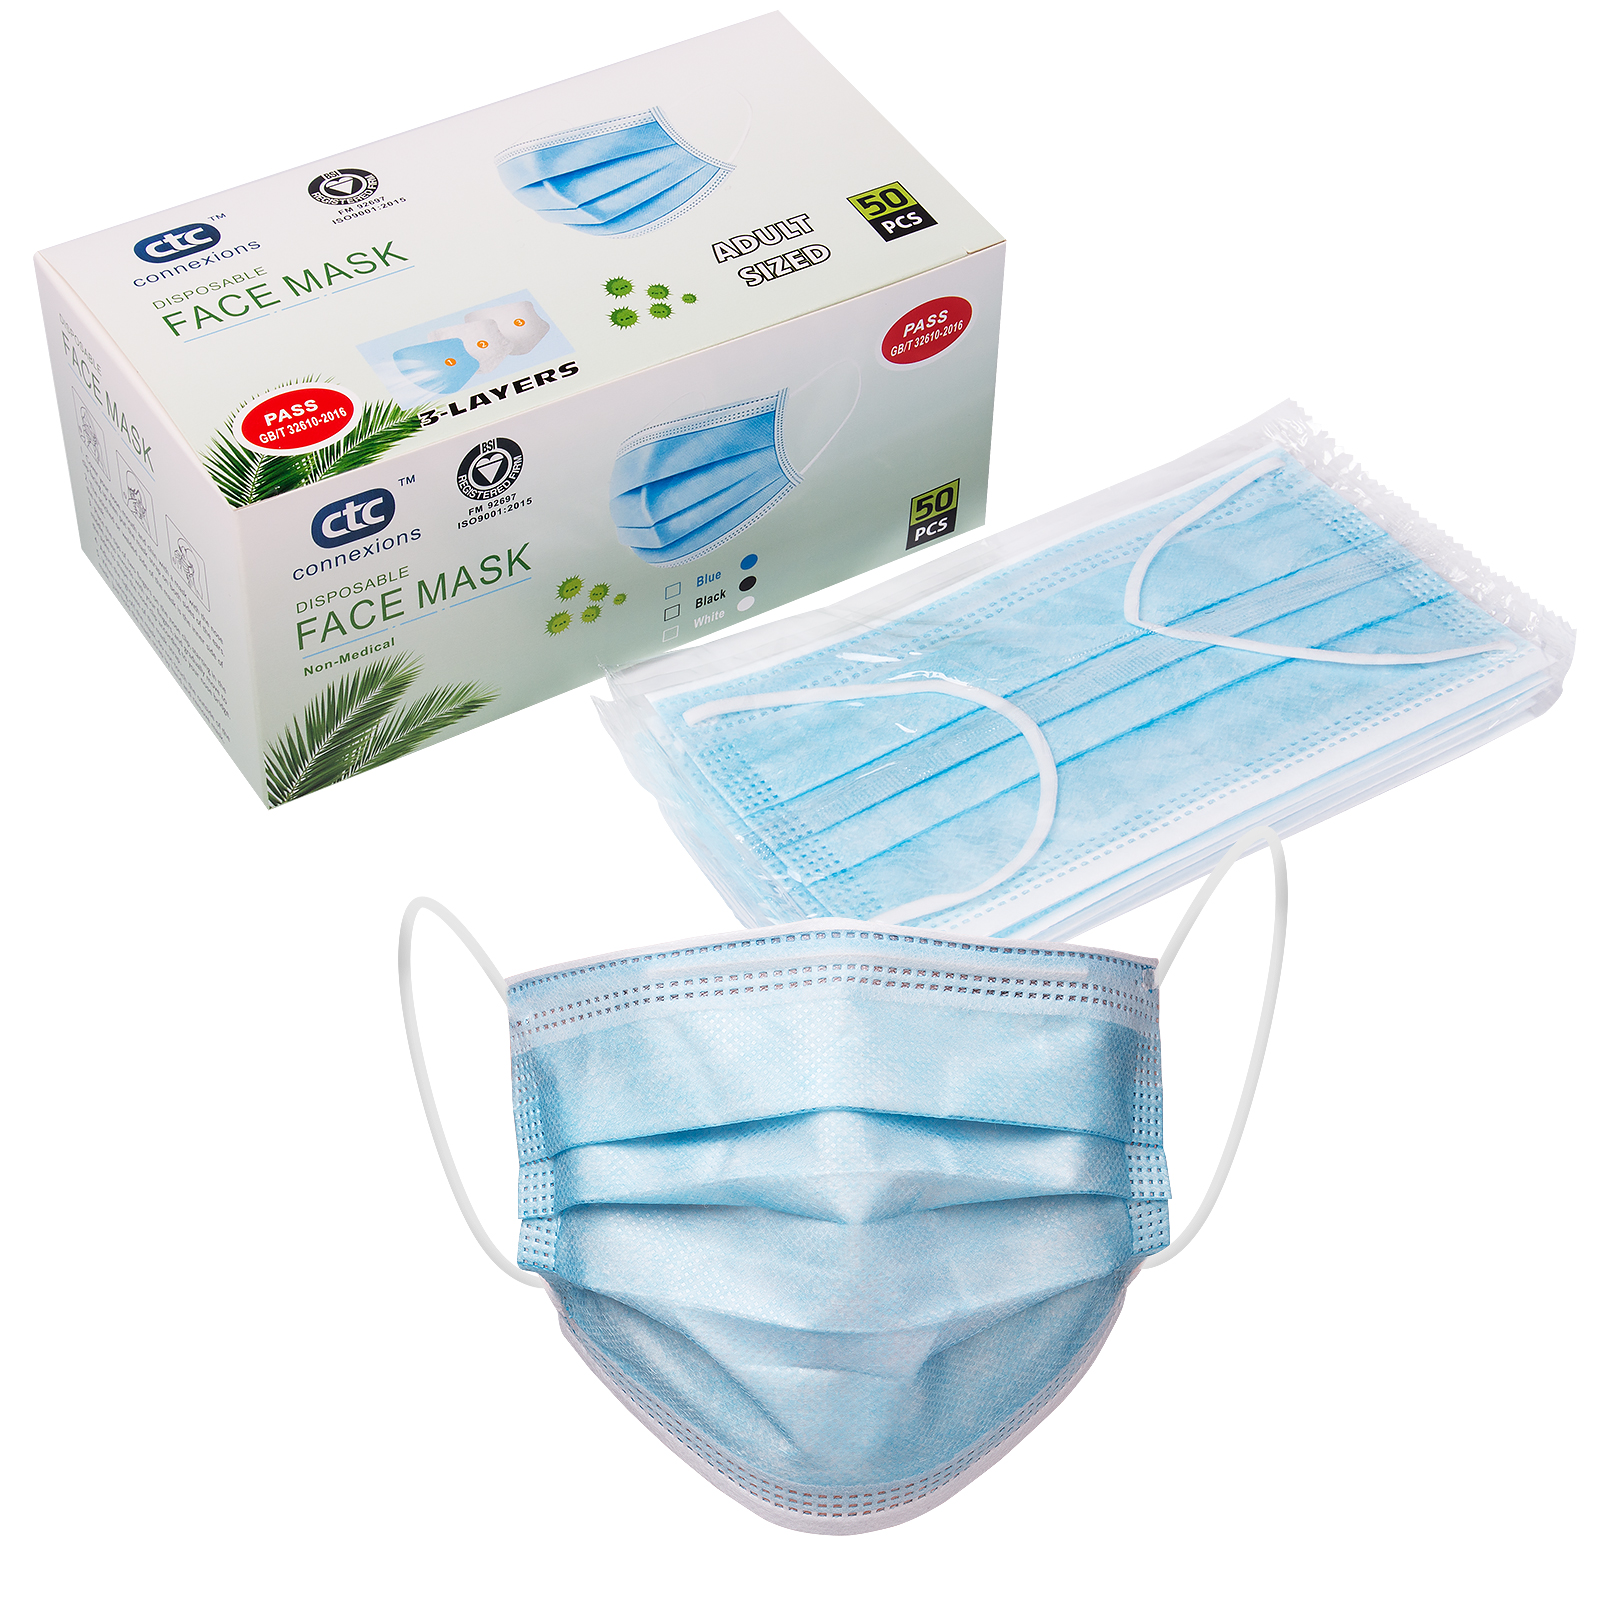 Disposable protective mask production line